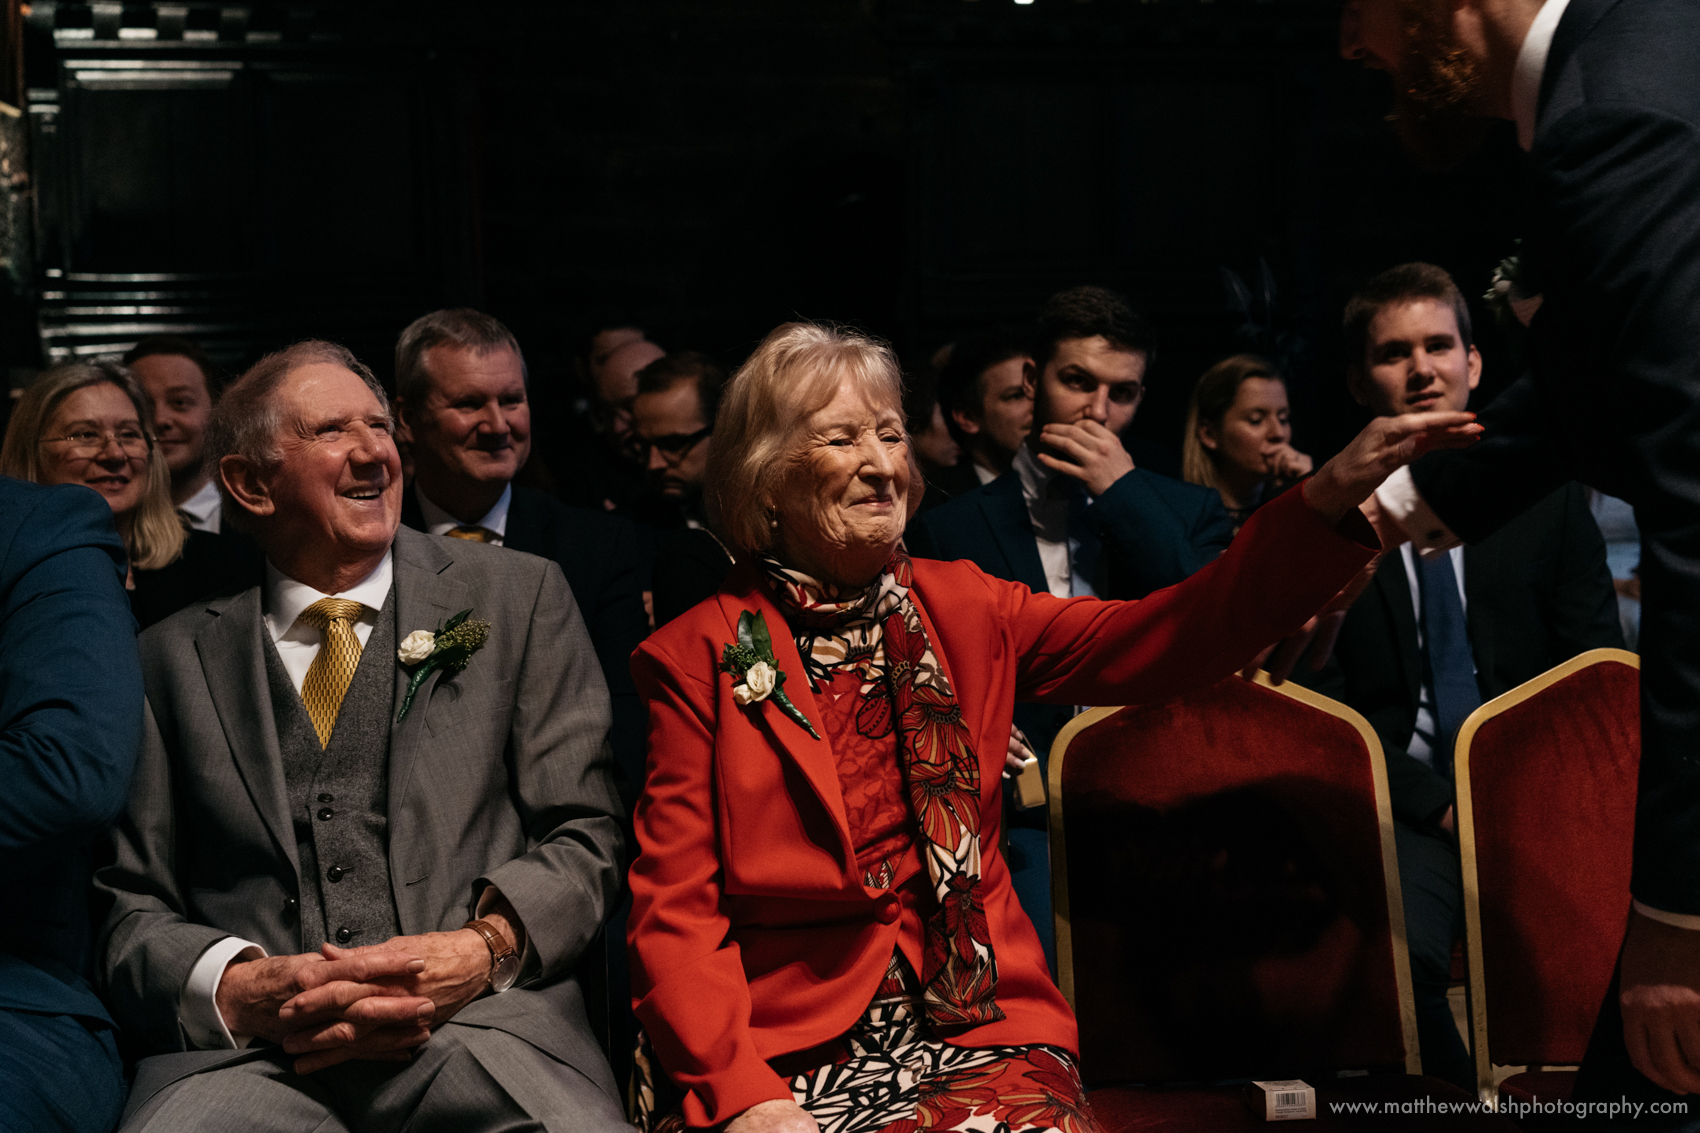 Proud grandparents get front row seats at he ceremony